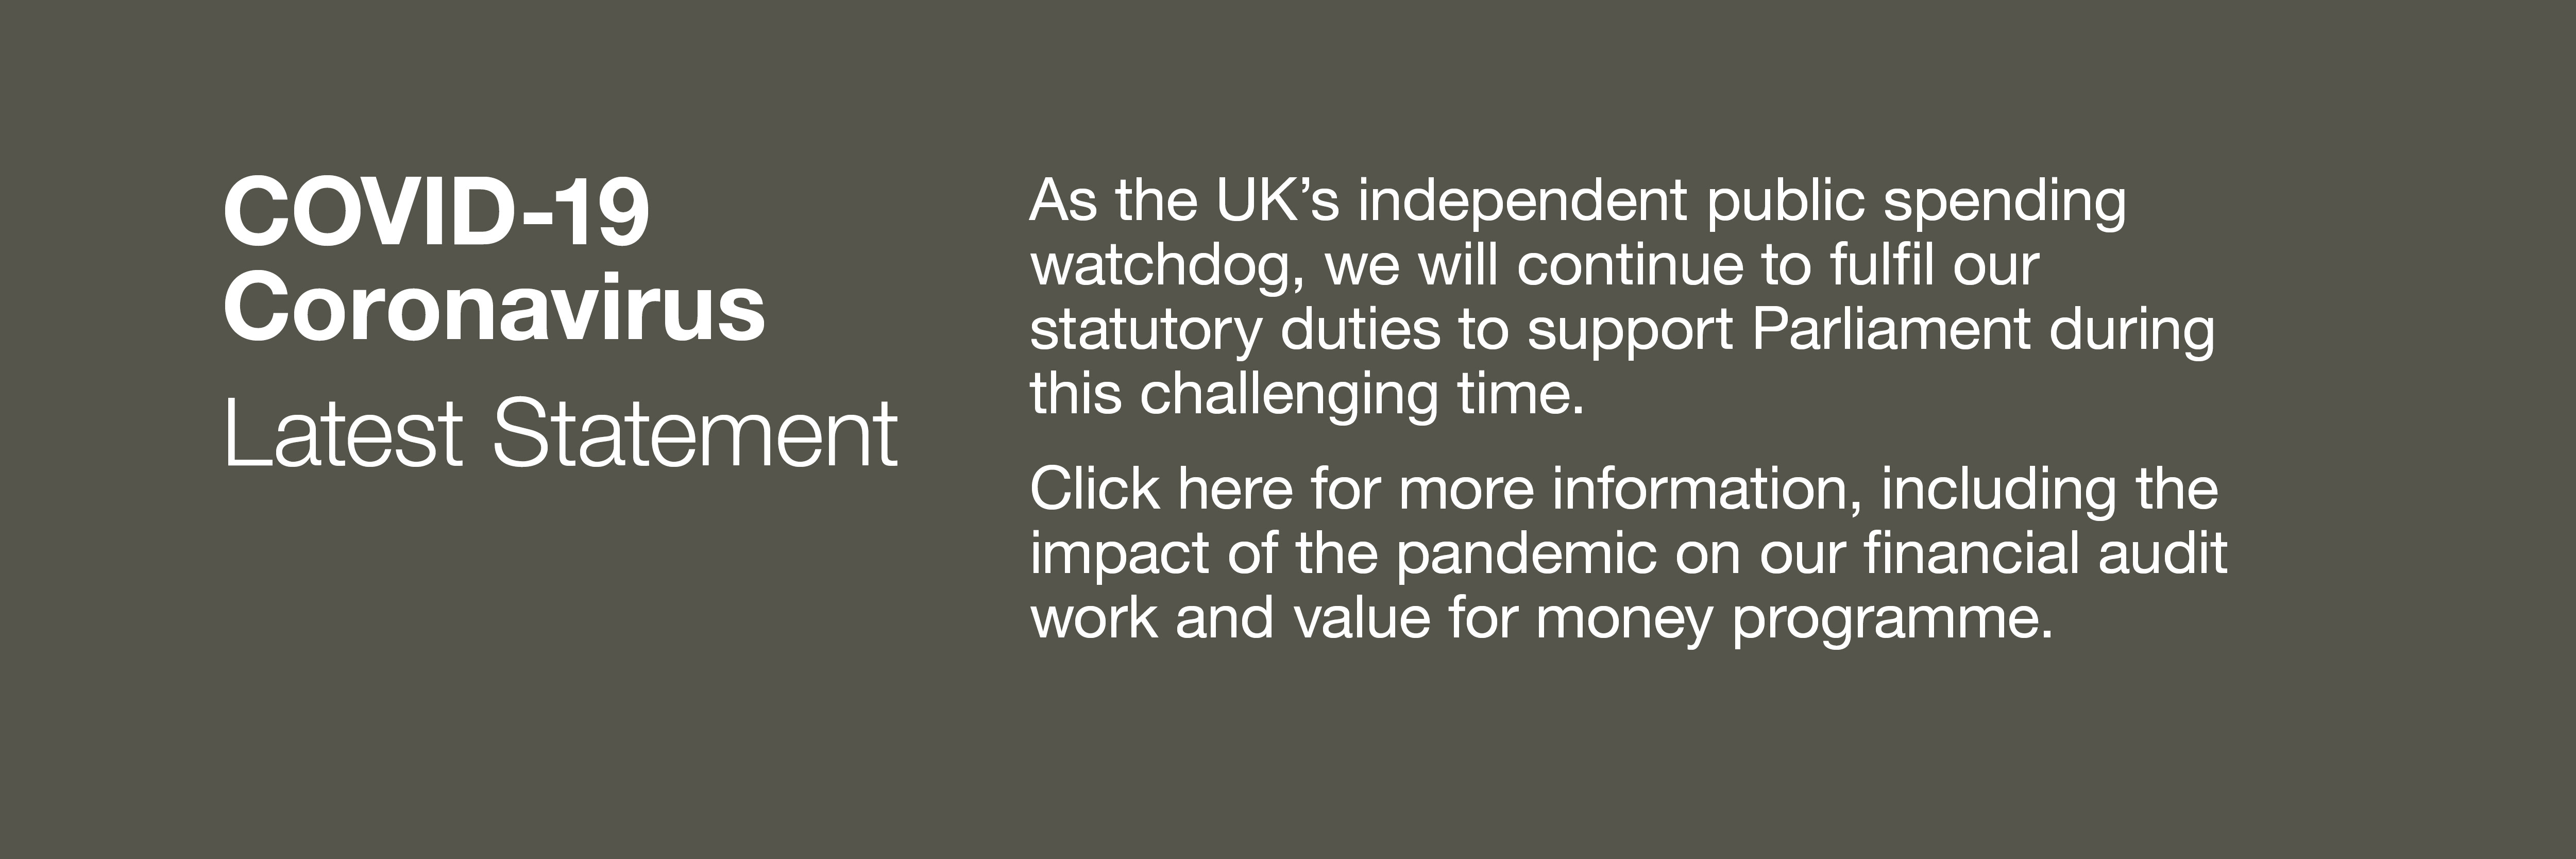 COVID-19 Coronavirus. Latest statement including the impact of the pandemic on our financial audit work and value for money programme